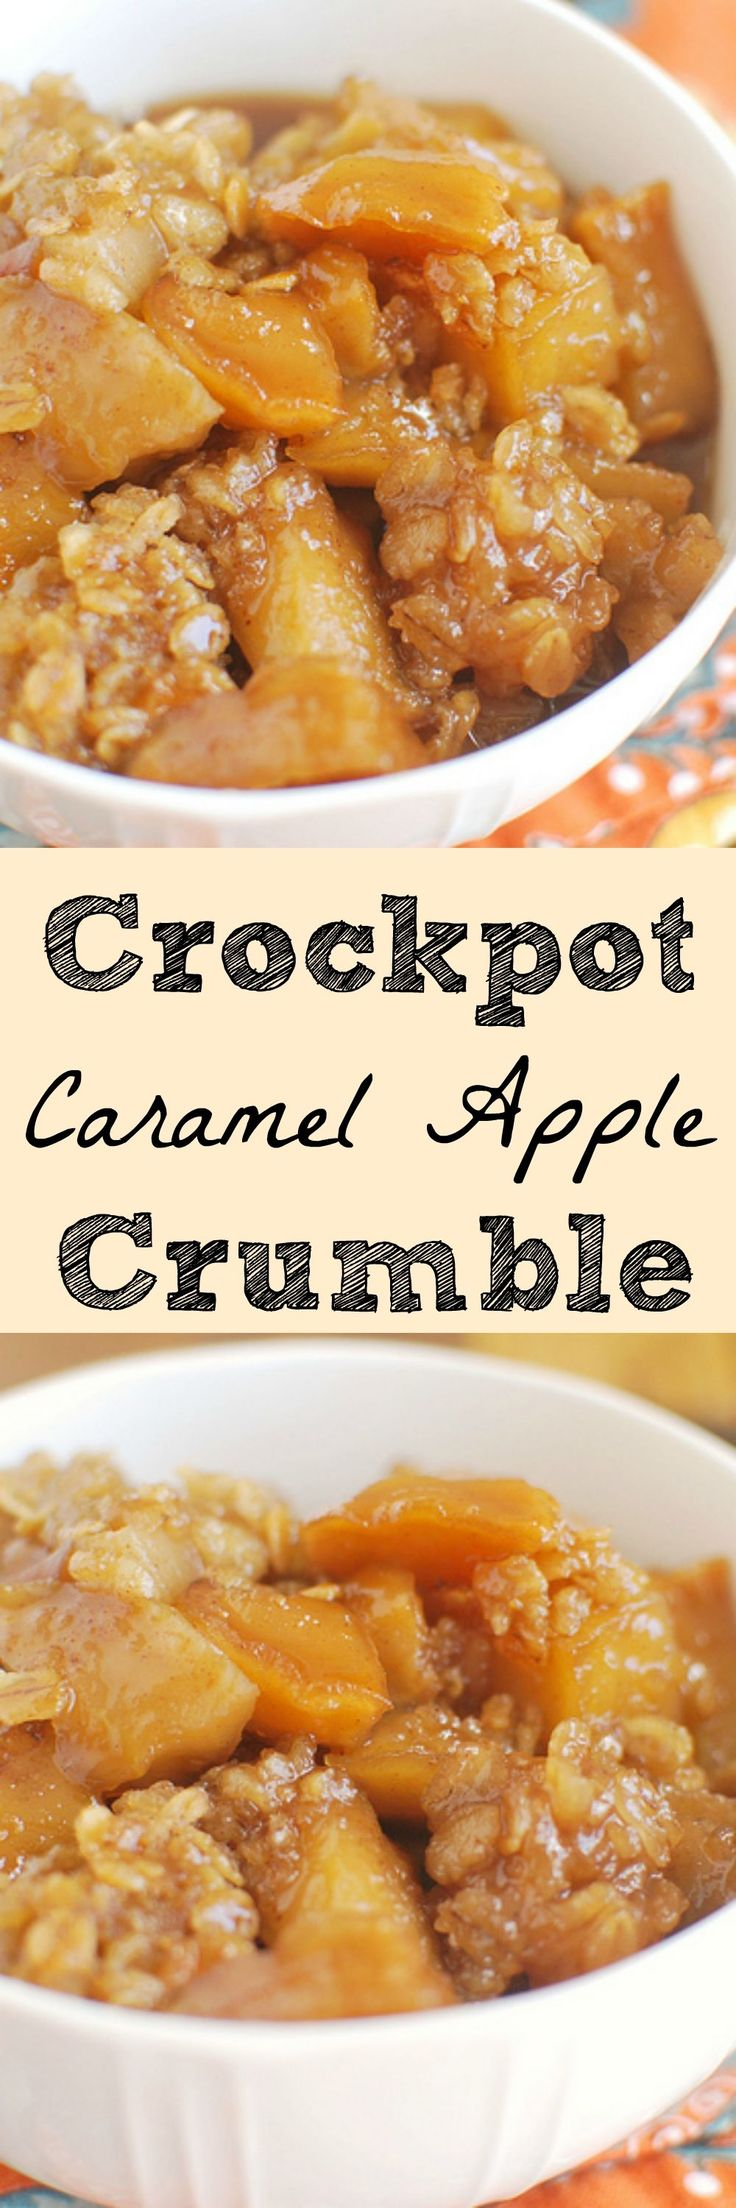 Crockpot Caramel Apple Crumble – the most delicious fall dessert! And its made in the crockpot!